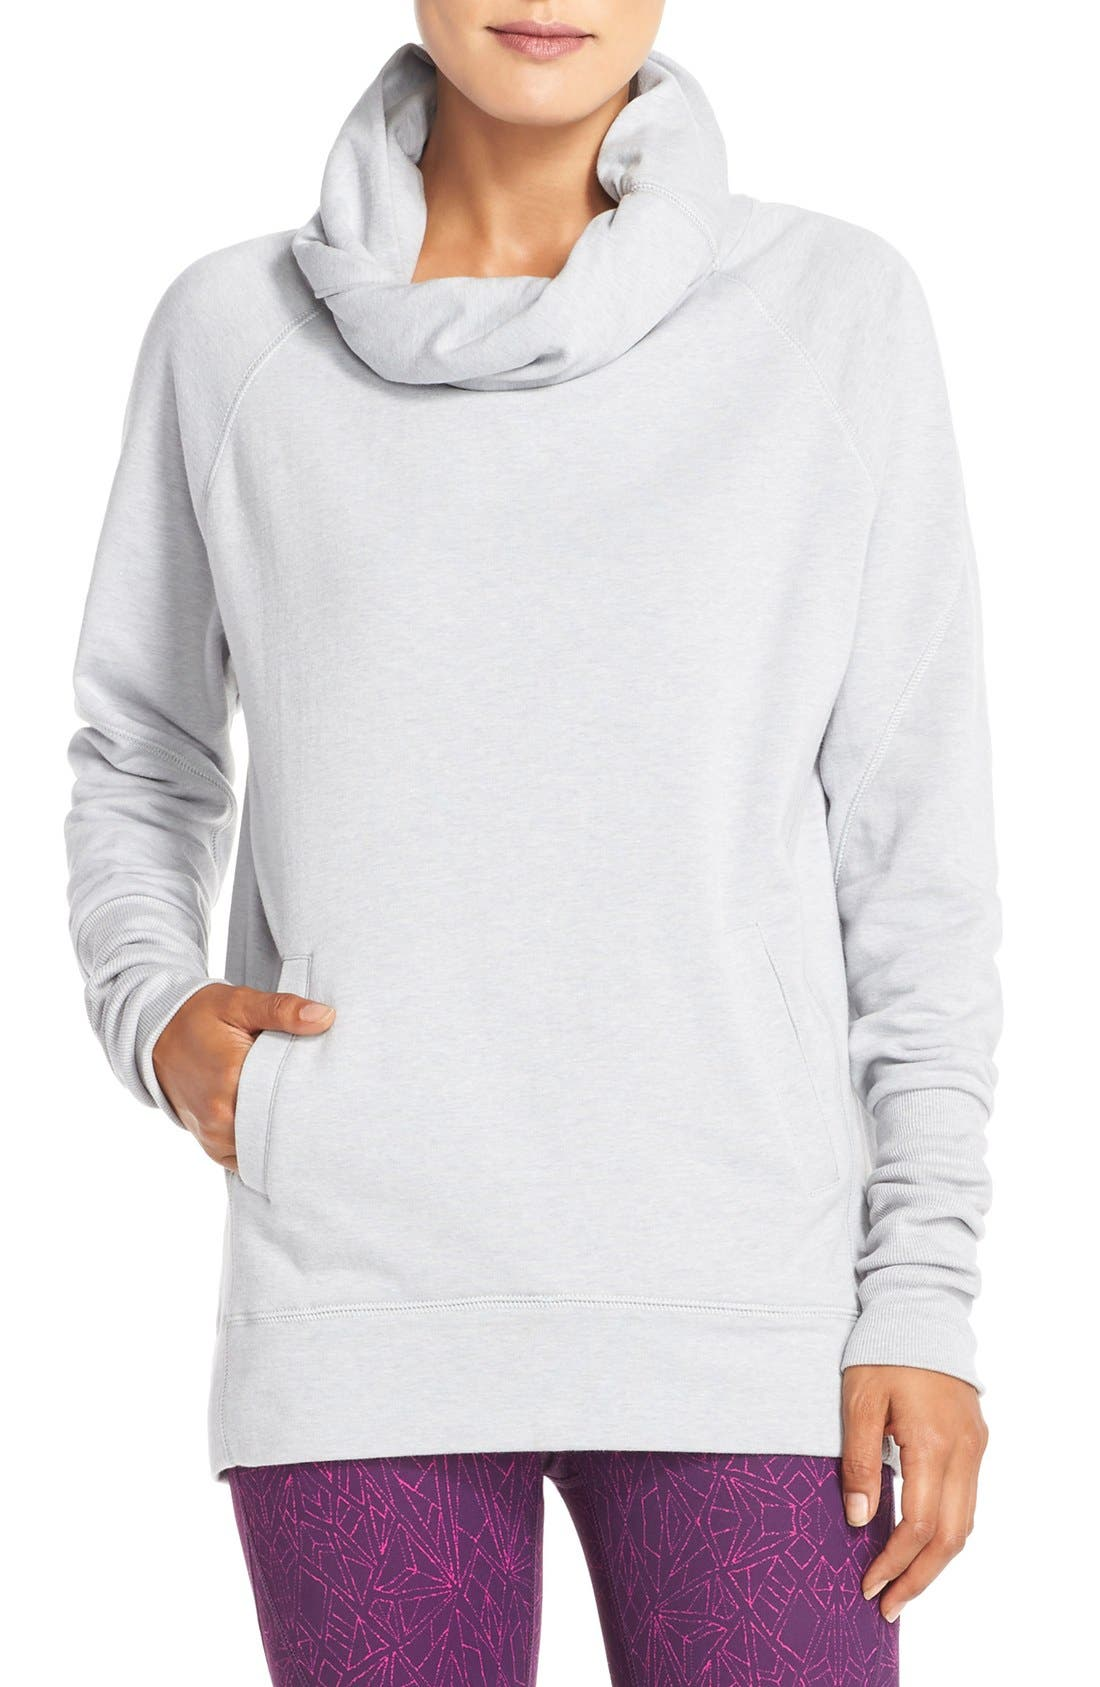 Alternate Image 1 Selected - Zella 'Inner Peace' Cotton Blend Pullover